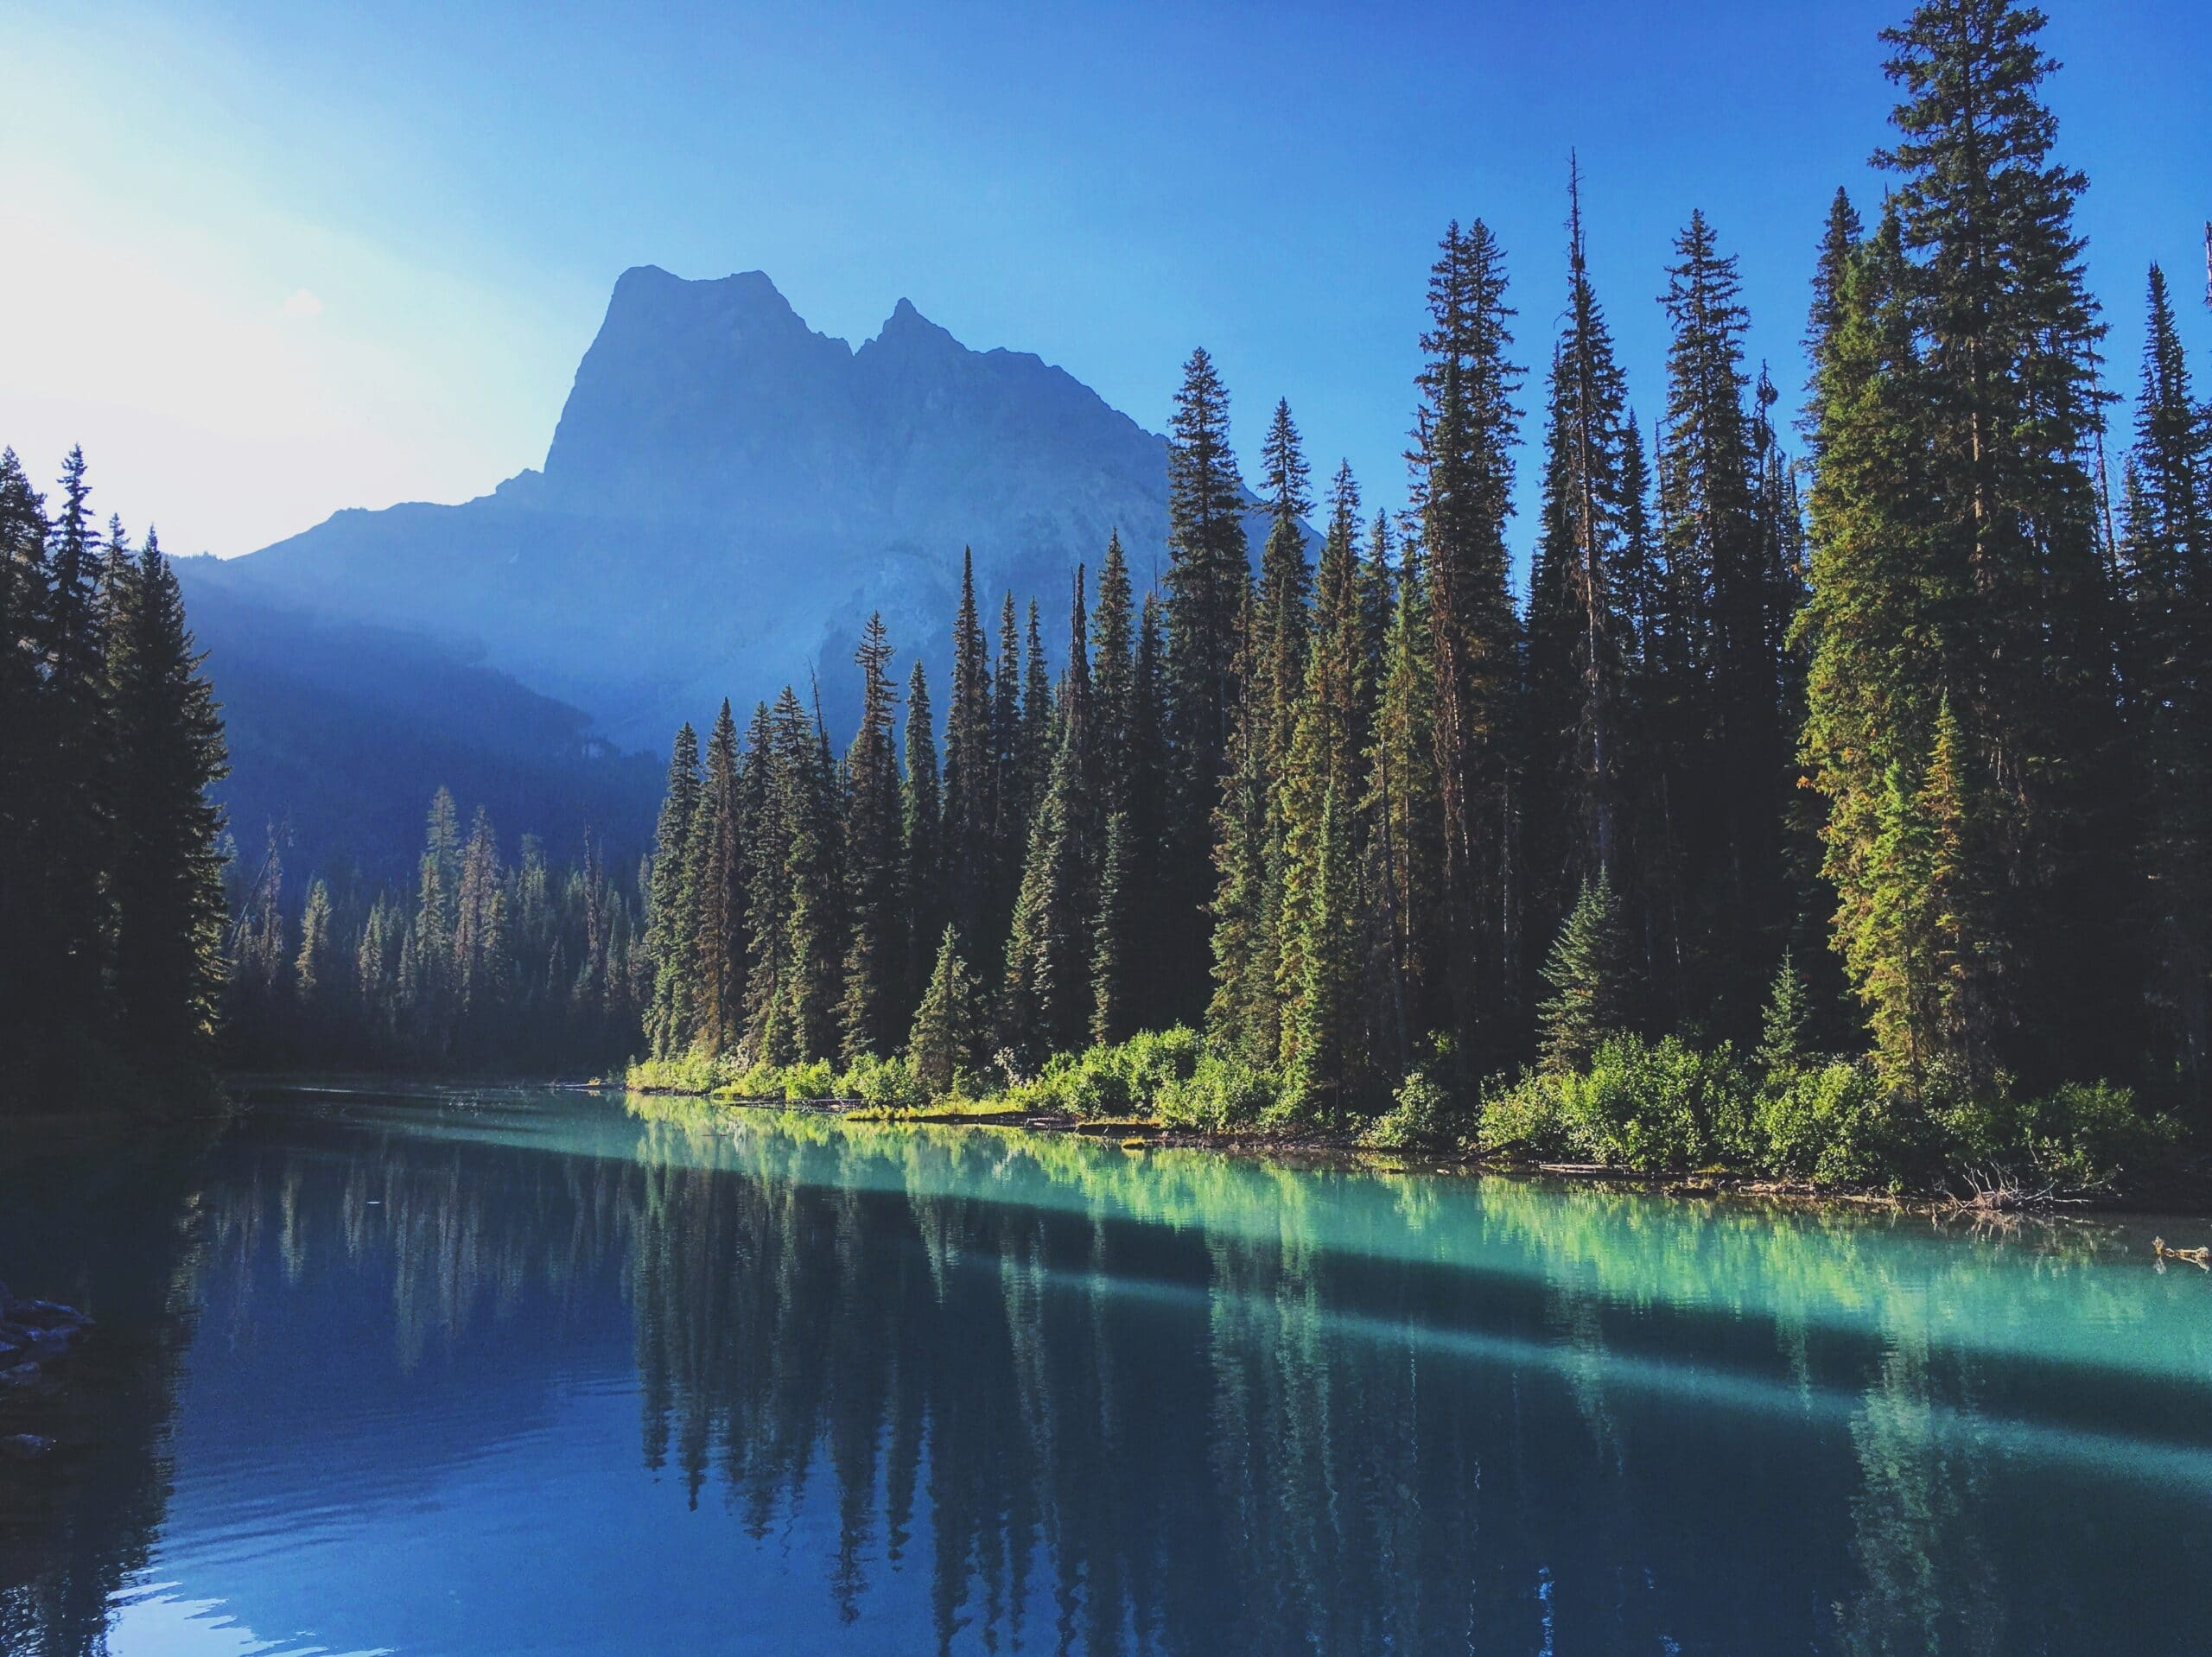 Cool blue lake with pine trees and a mountain